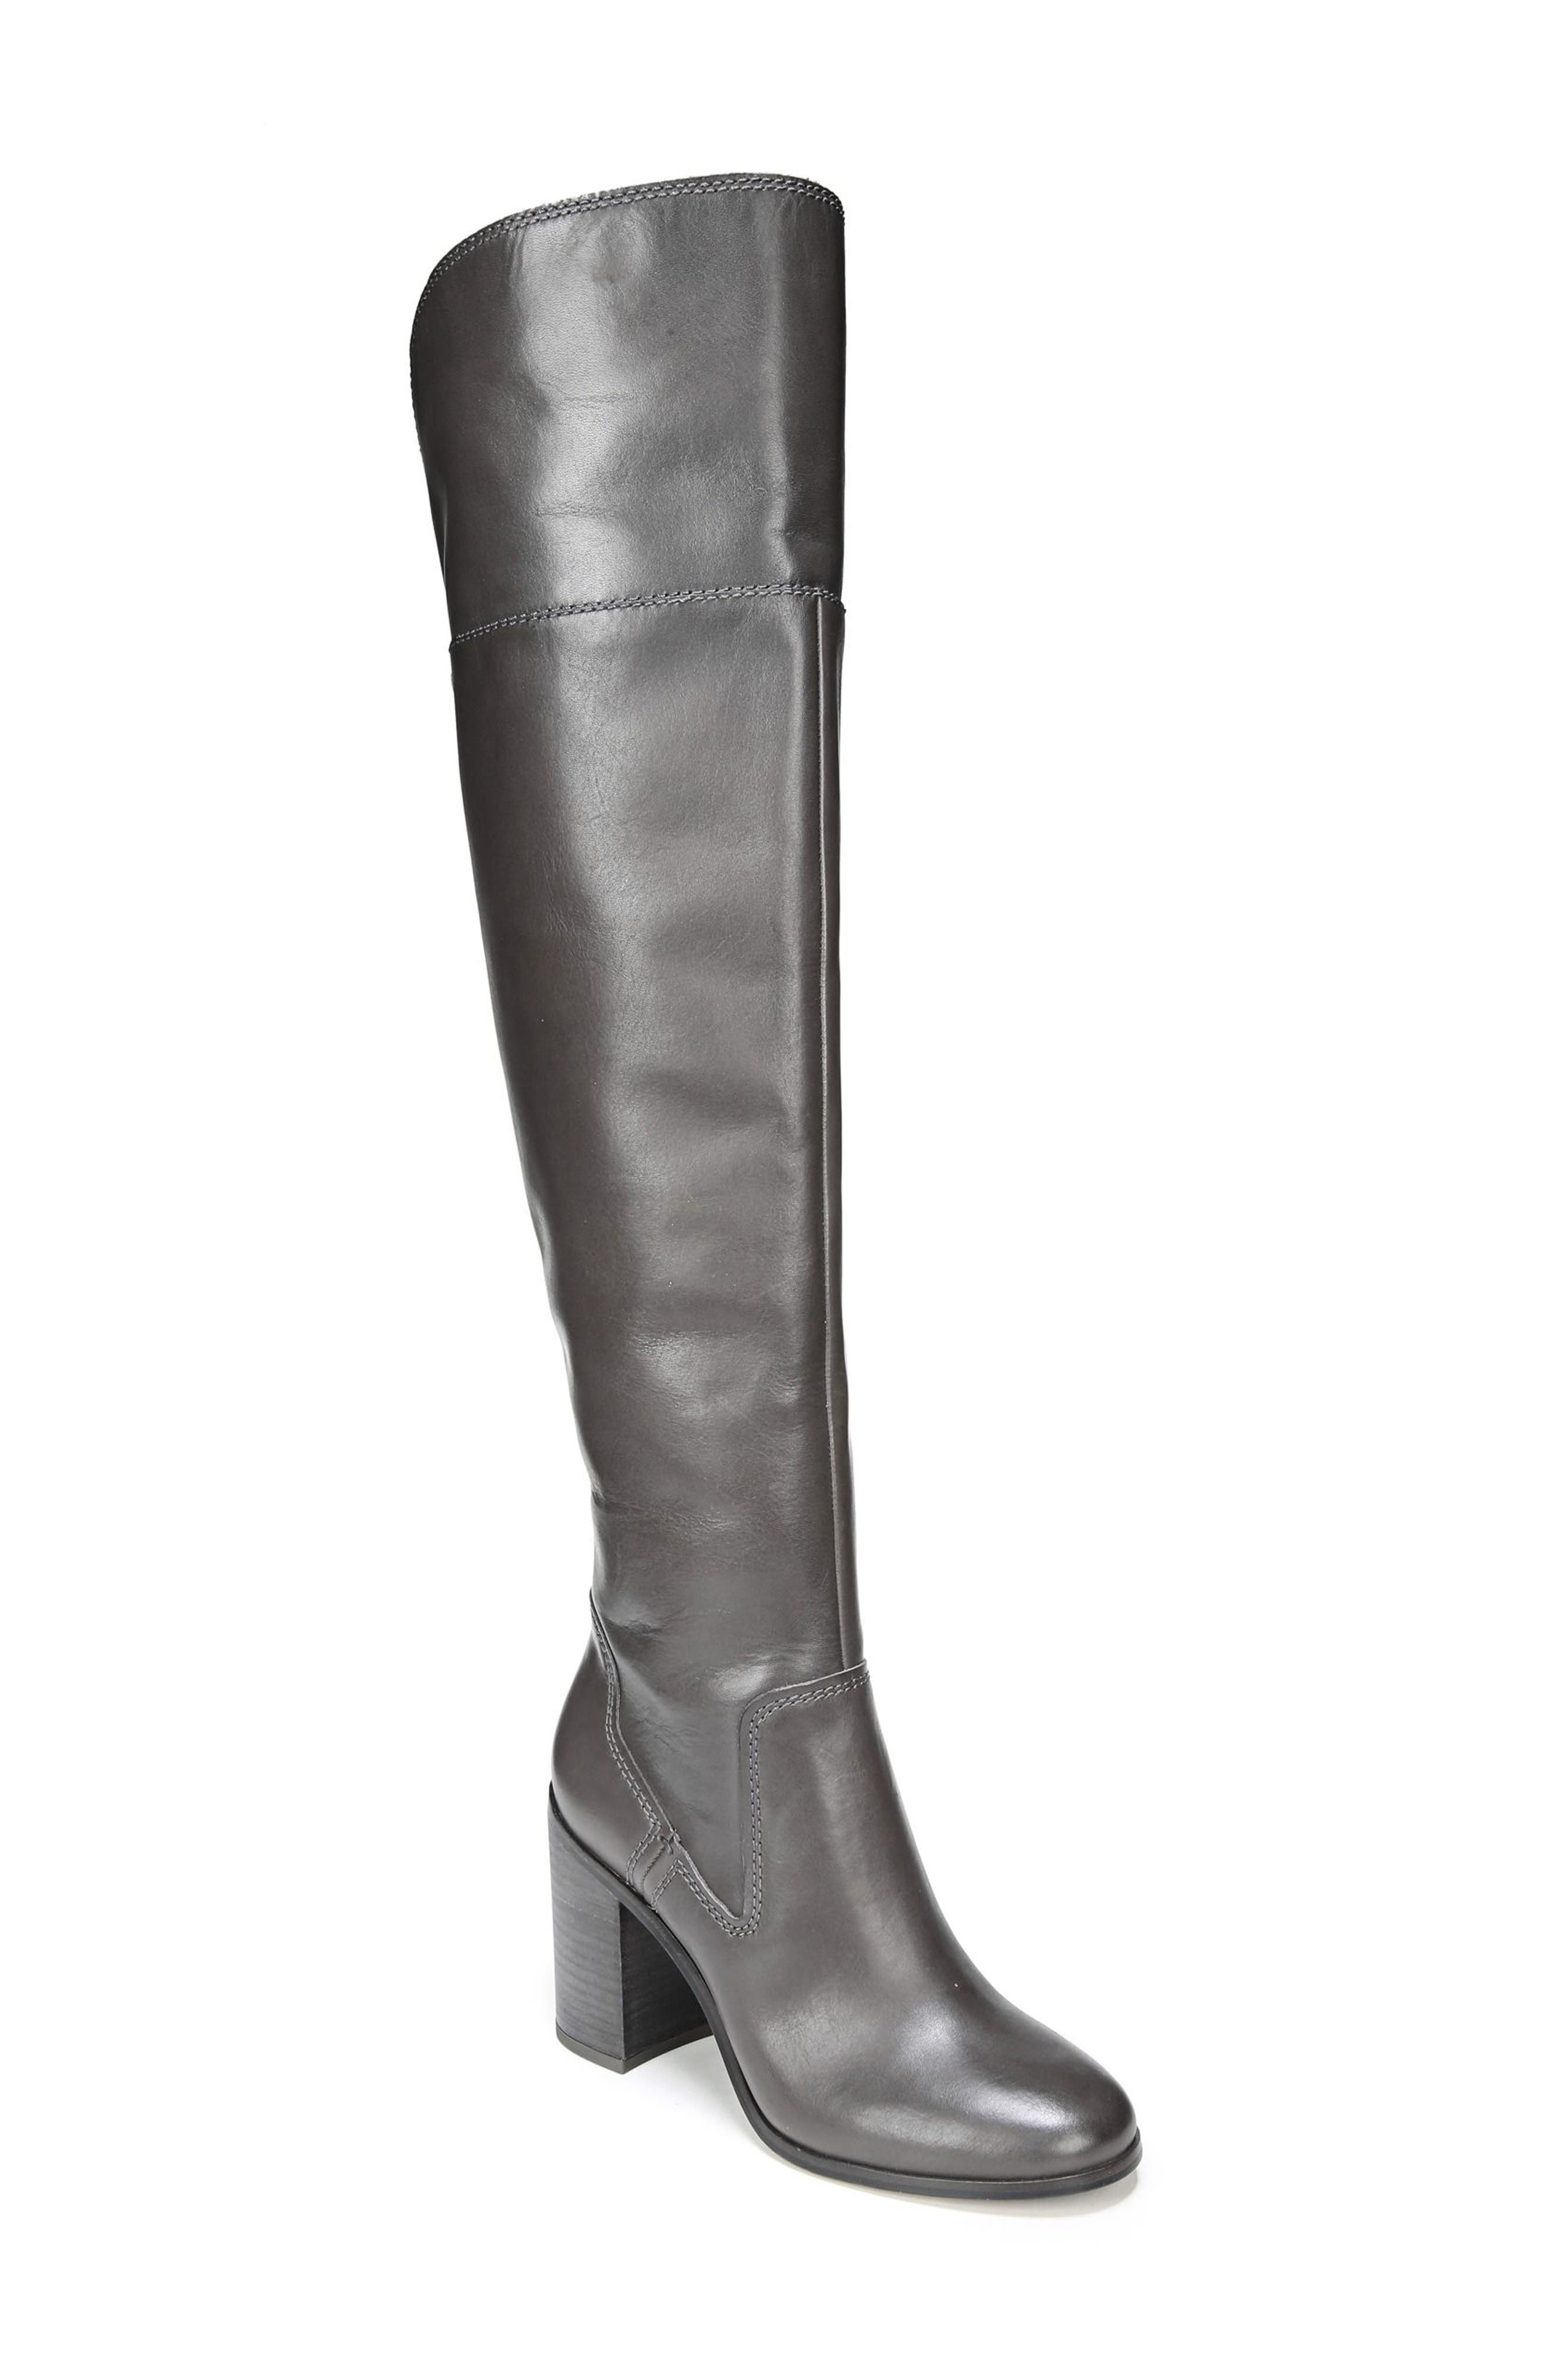 Freda Over the Knee Boot,                             Main thumbnail 1, color,                             Peat Leather